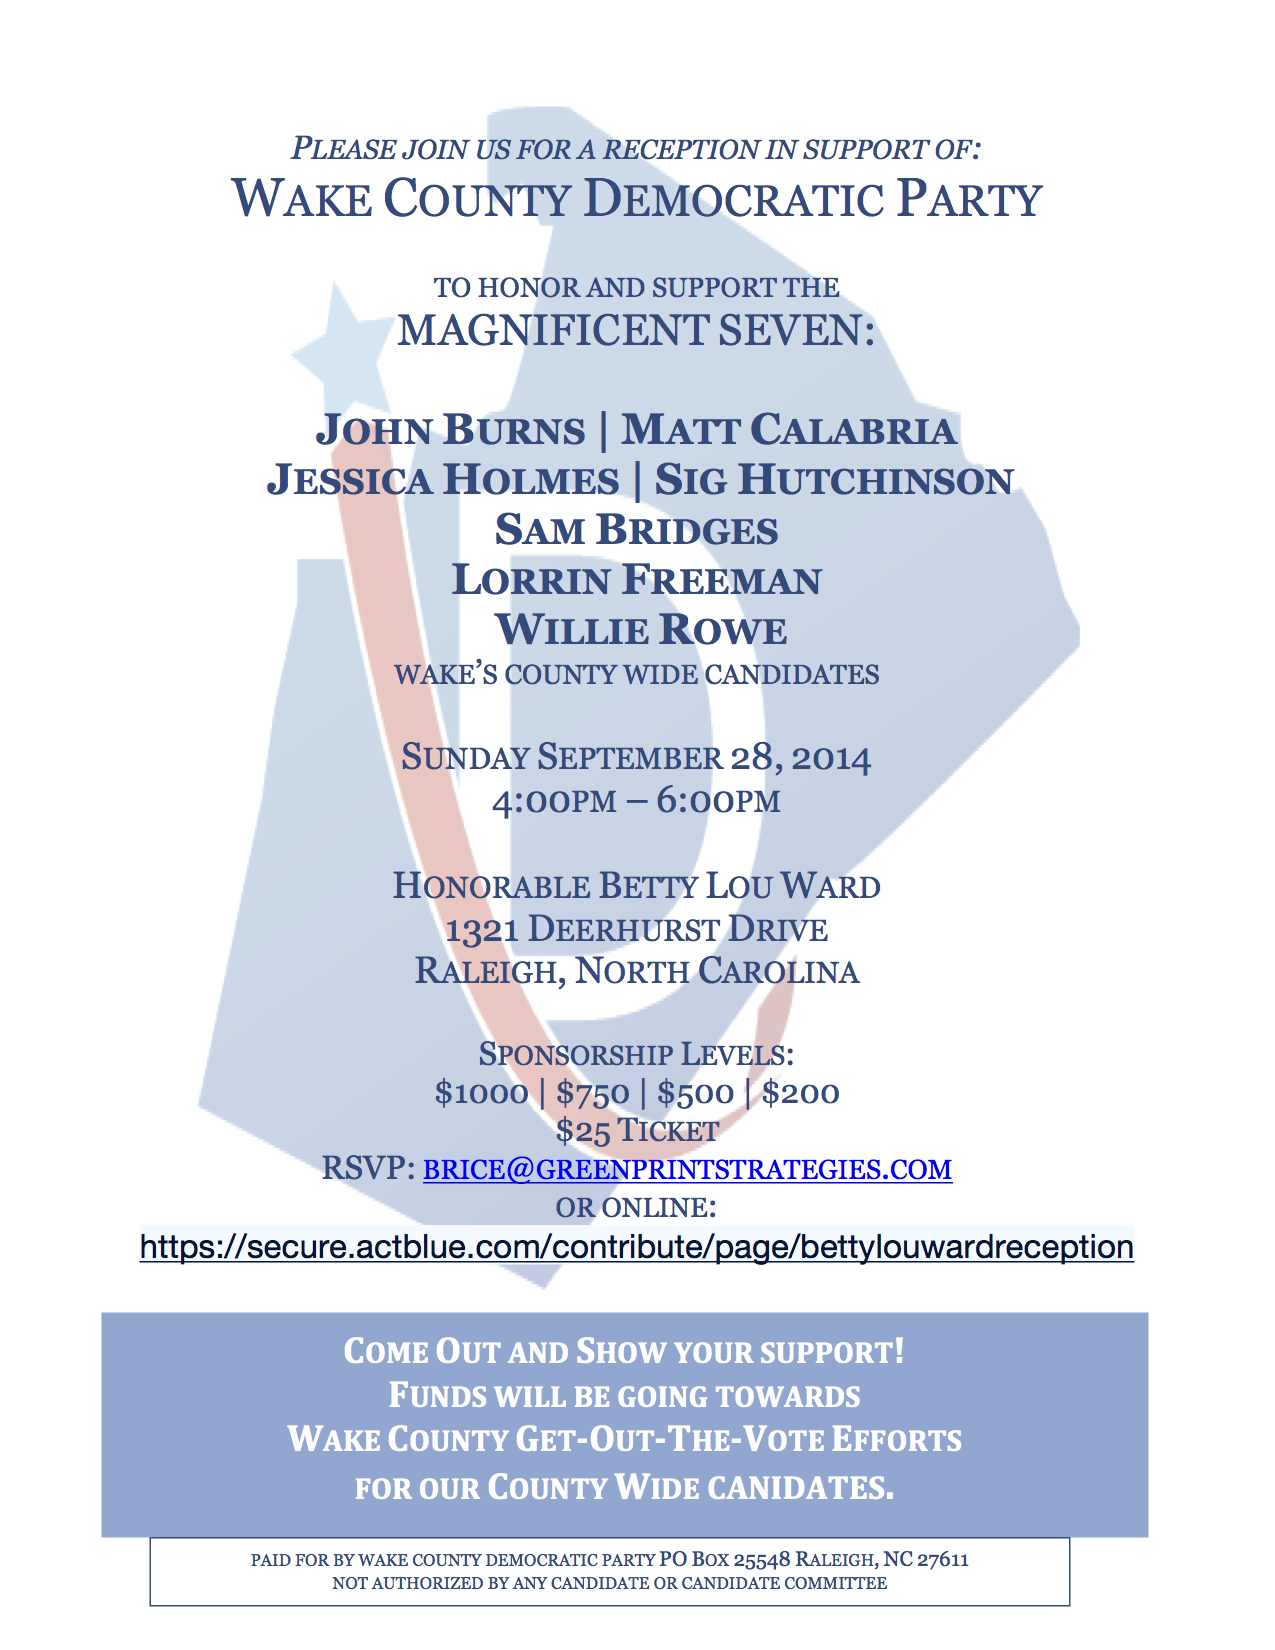 WCDP_BettyLou_September28.png